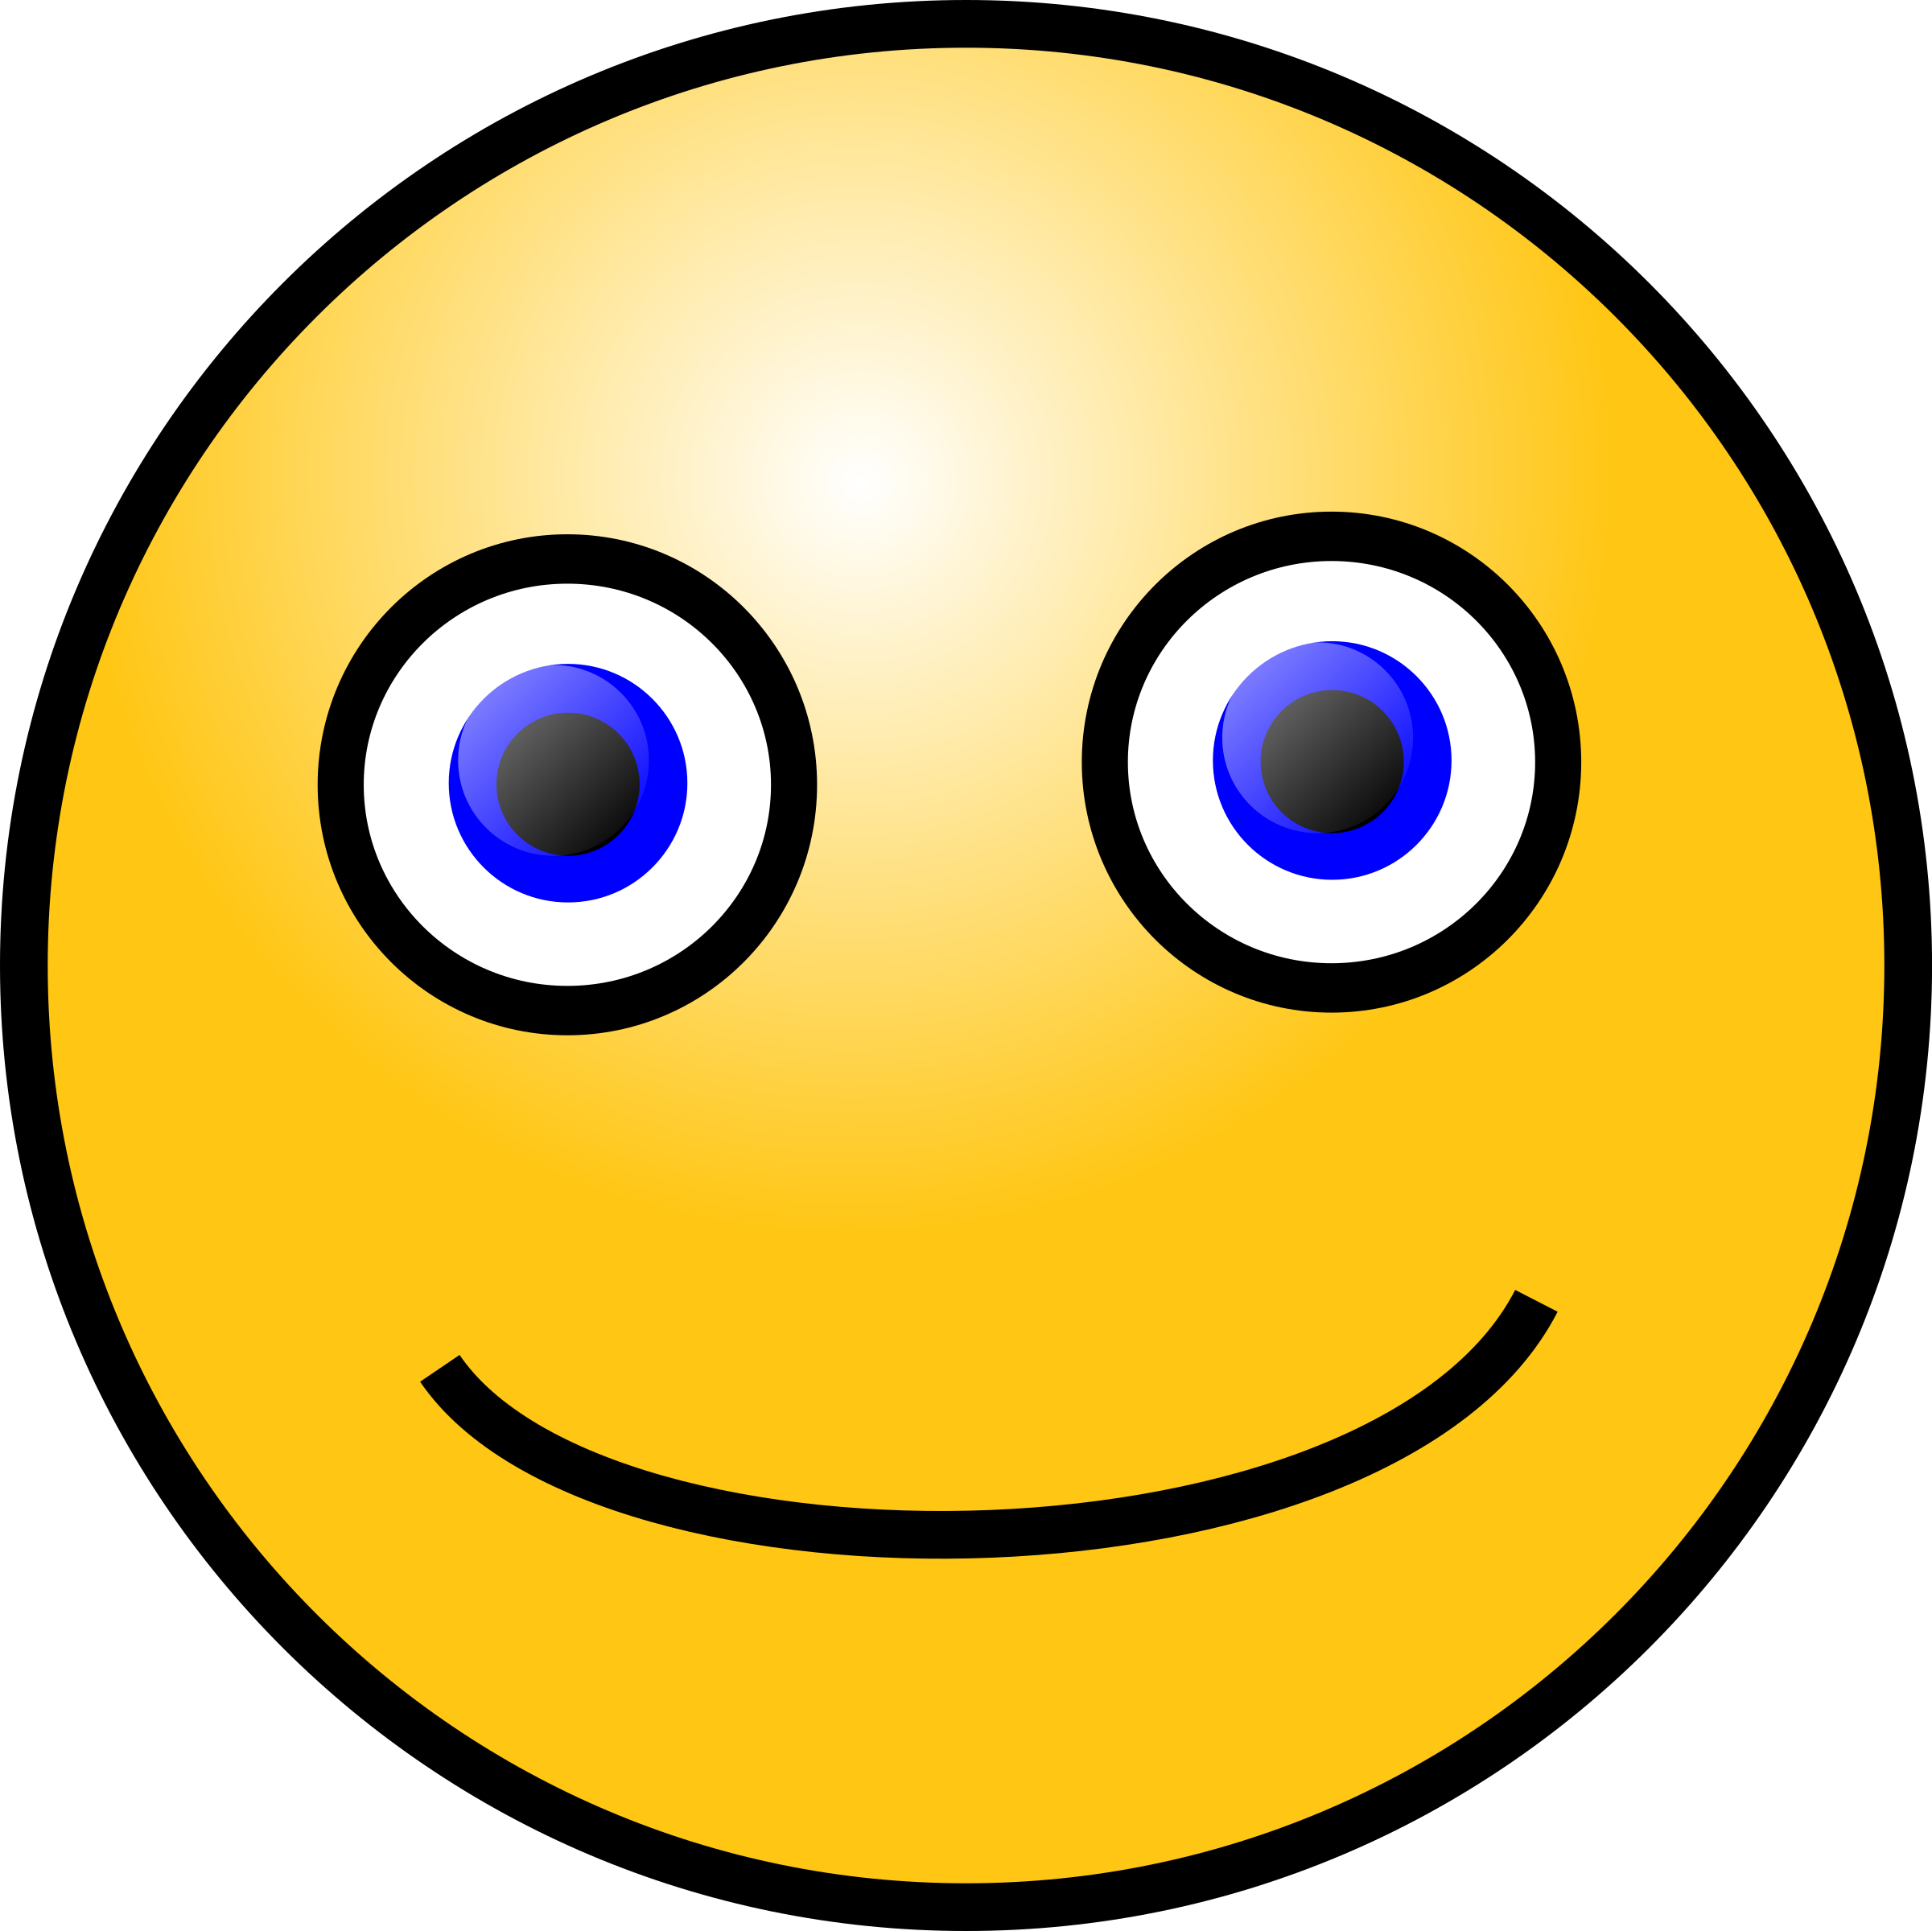 Smileys clipart simple Emoticons: Emoticons: face face Simple